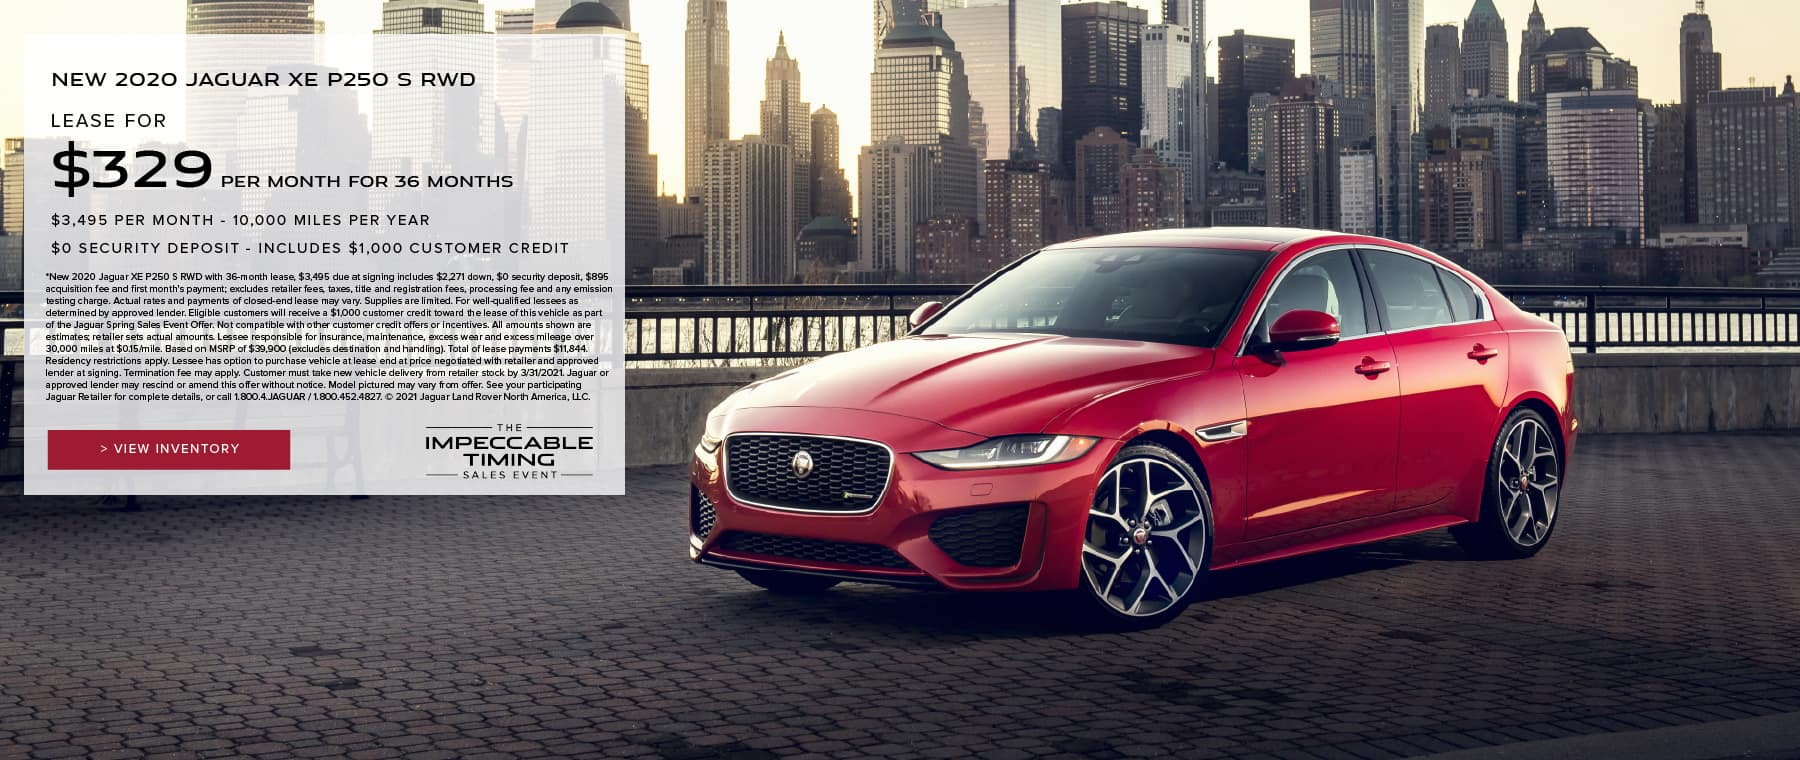 NEW 2020 JAGUAR XE P250 S RWD. $329 PER MONTH. 36 MONTH LEASE TERM WITH $3,495 DUE AT SIGNING. $0 SECURITY DEPOSIT. 10,000 MILES PER YEAR. EXCLUDES RETAILER FEES, TAXES, TITLE AND REGISTRATION FEES, PROCESSING FEE AND ANY EMISSION TESTING CHARGE. INCLUDES $1,000 CUSTOMER CREDIT. OFFER ENDS 3/31/2021. VIEW INVENTORY. RED JAGUAR XE PARKED BY LAKE.